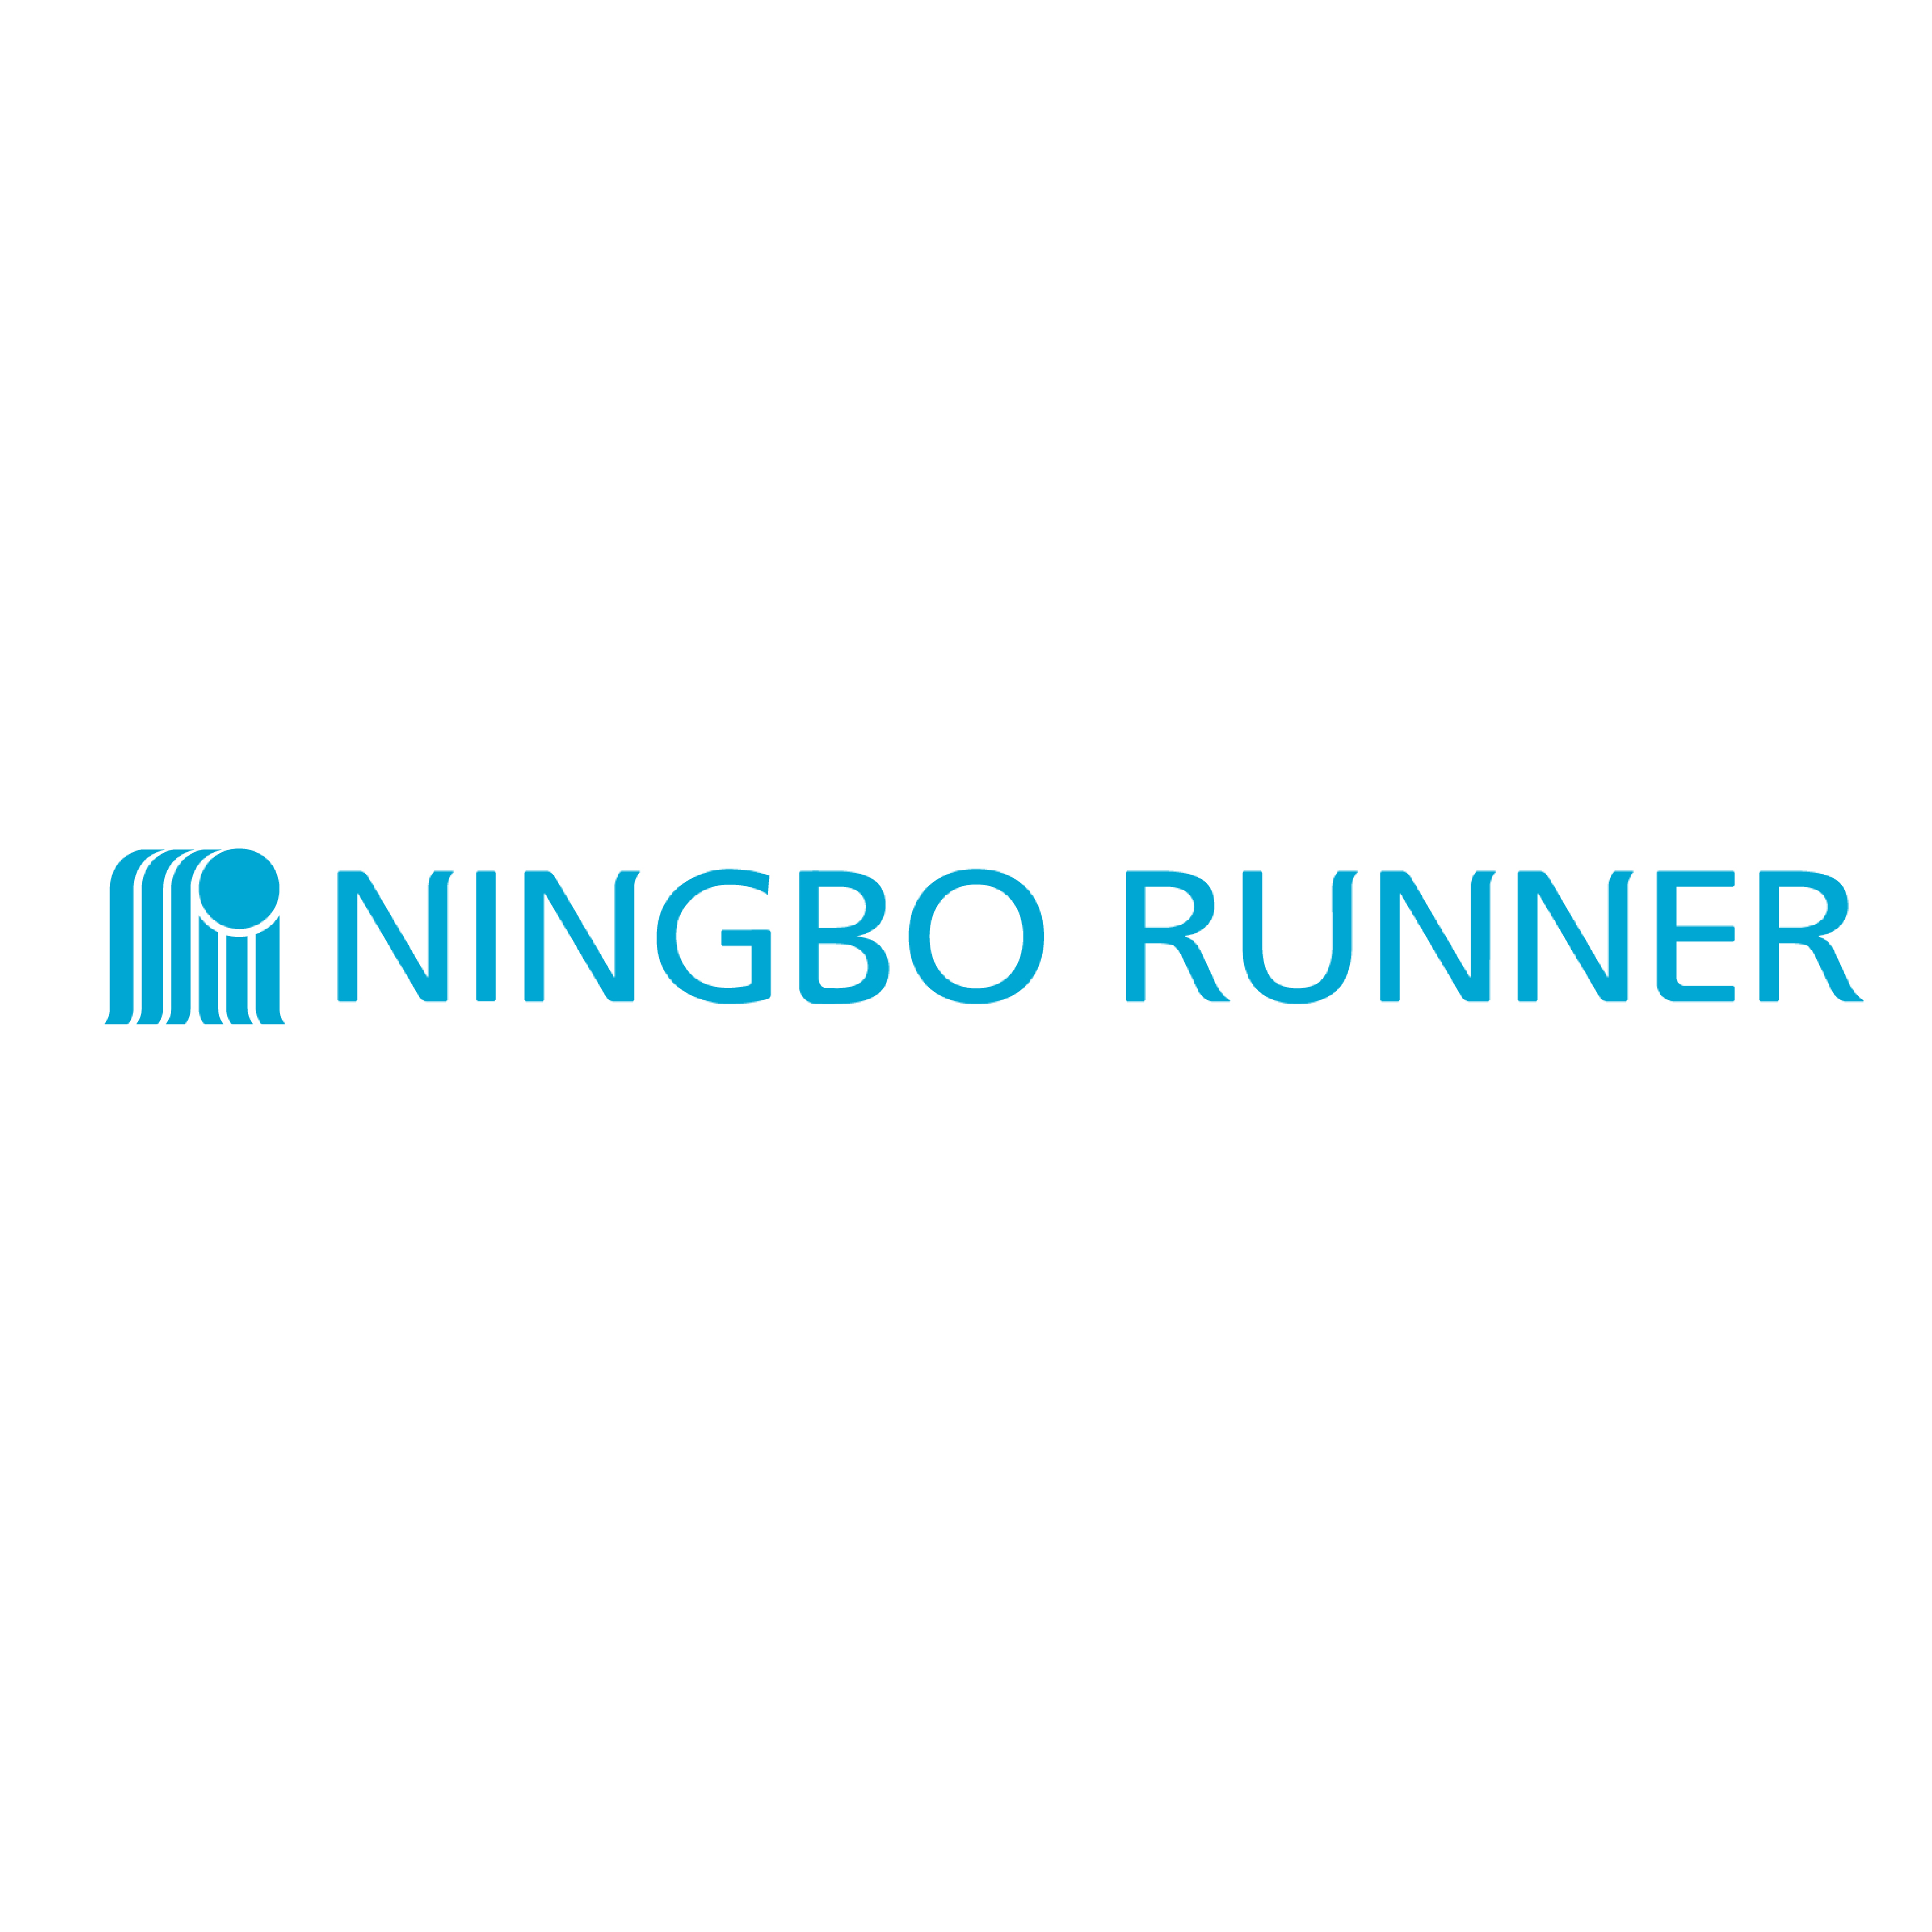 Ningbo runner Industrial corporation